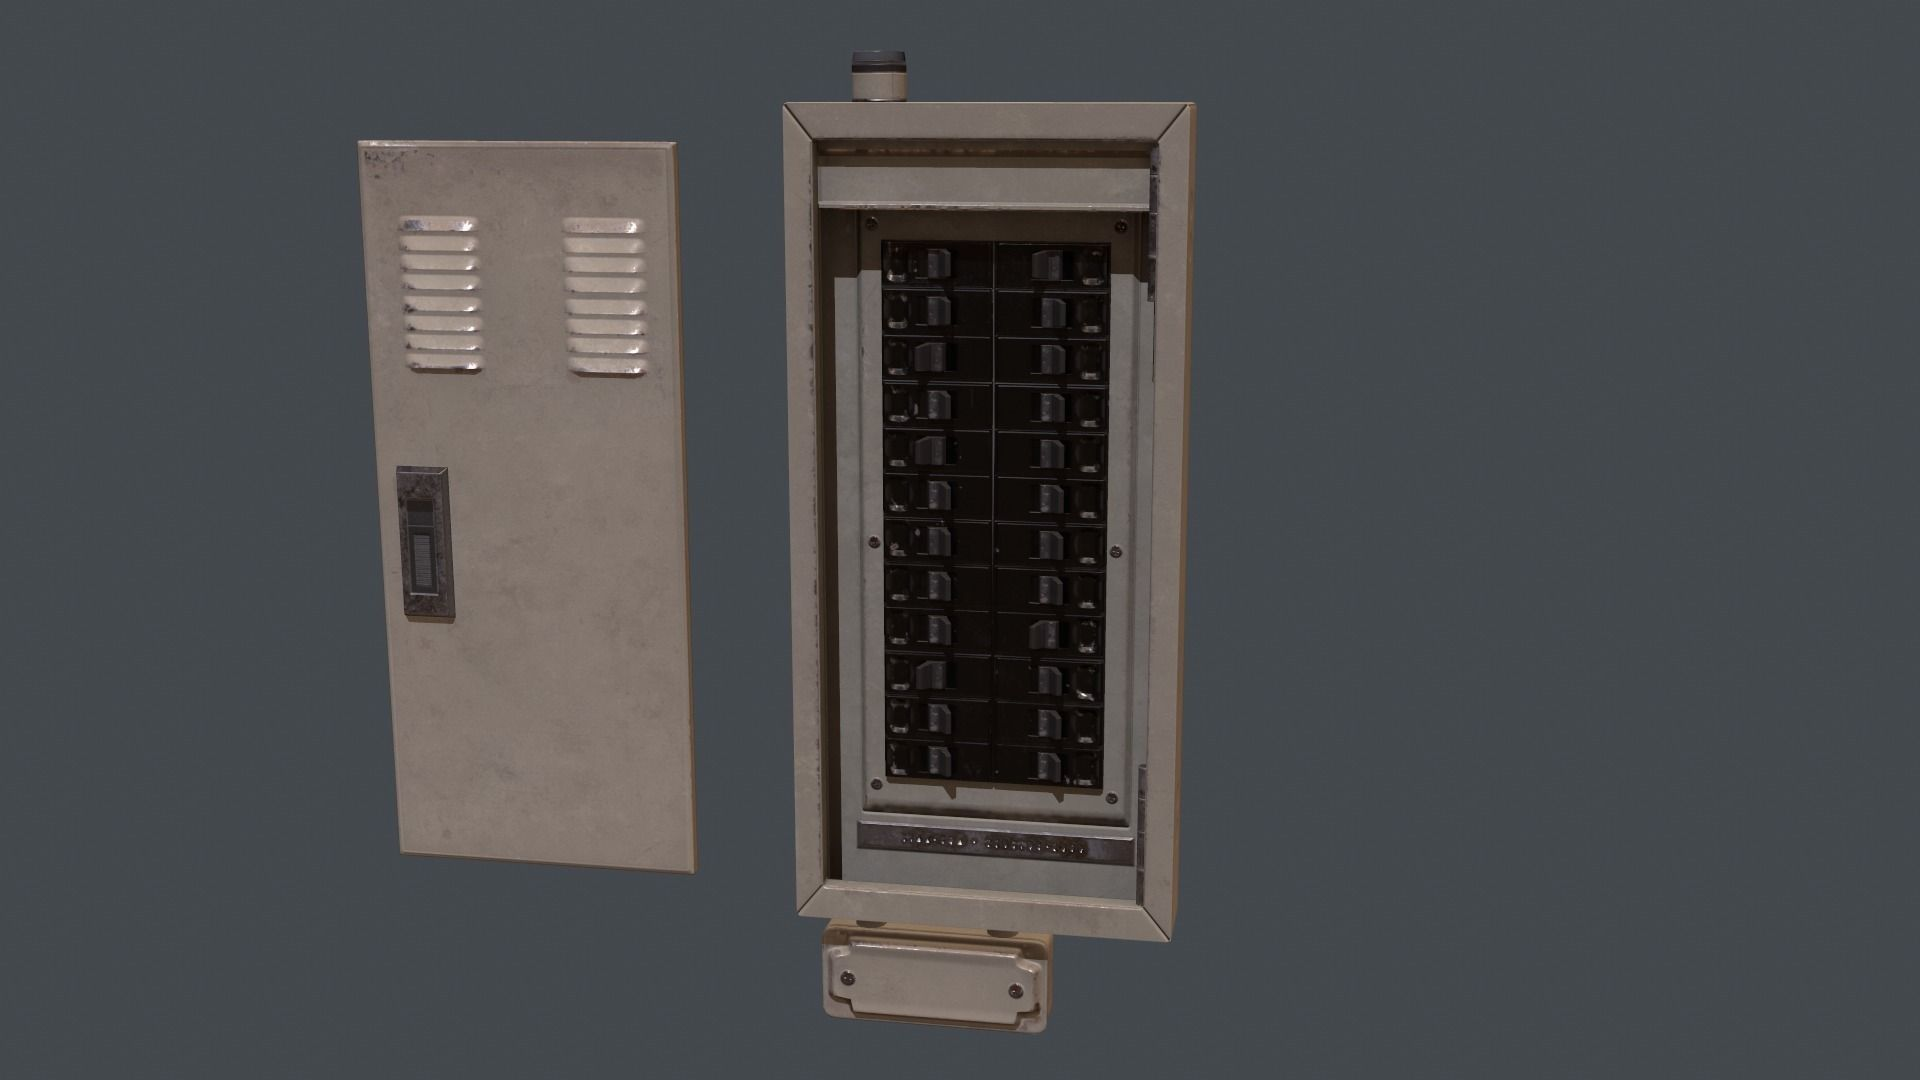 hight resolution of electrical fuse box pbr game ready 3d model cgtraderelectrical fuse box pbr game ready 3d model